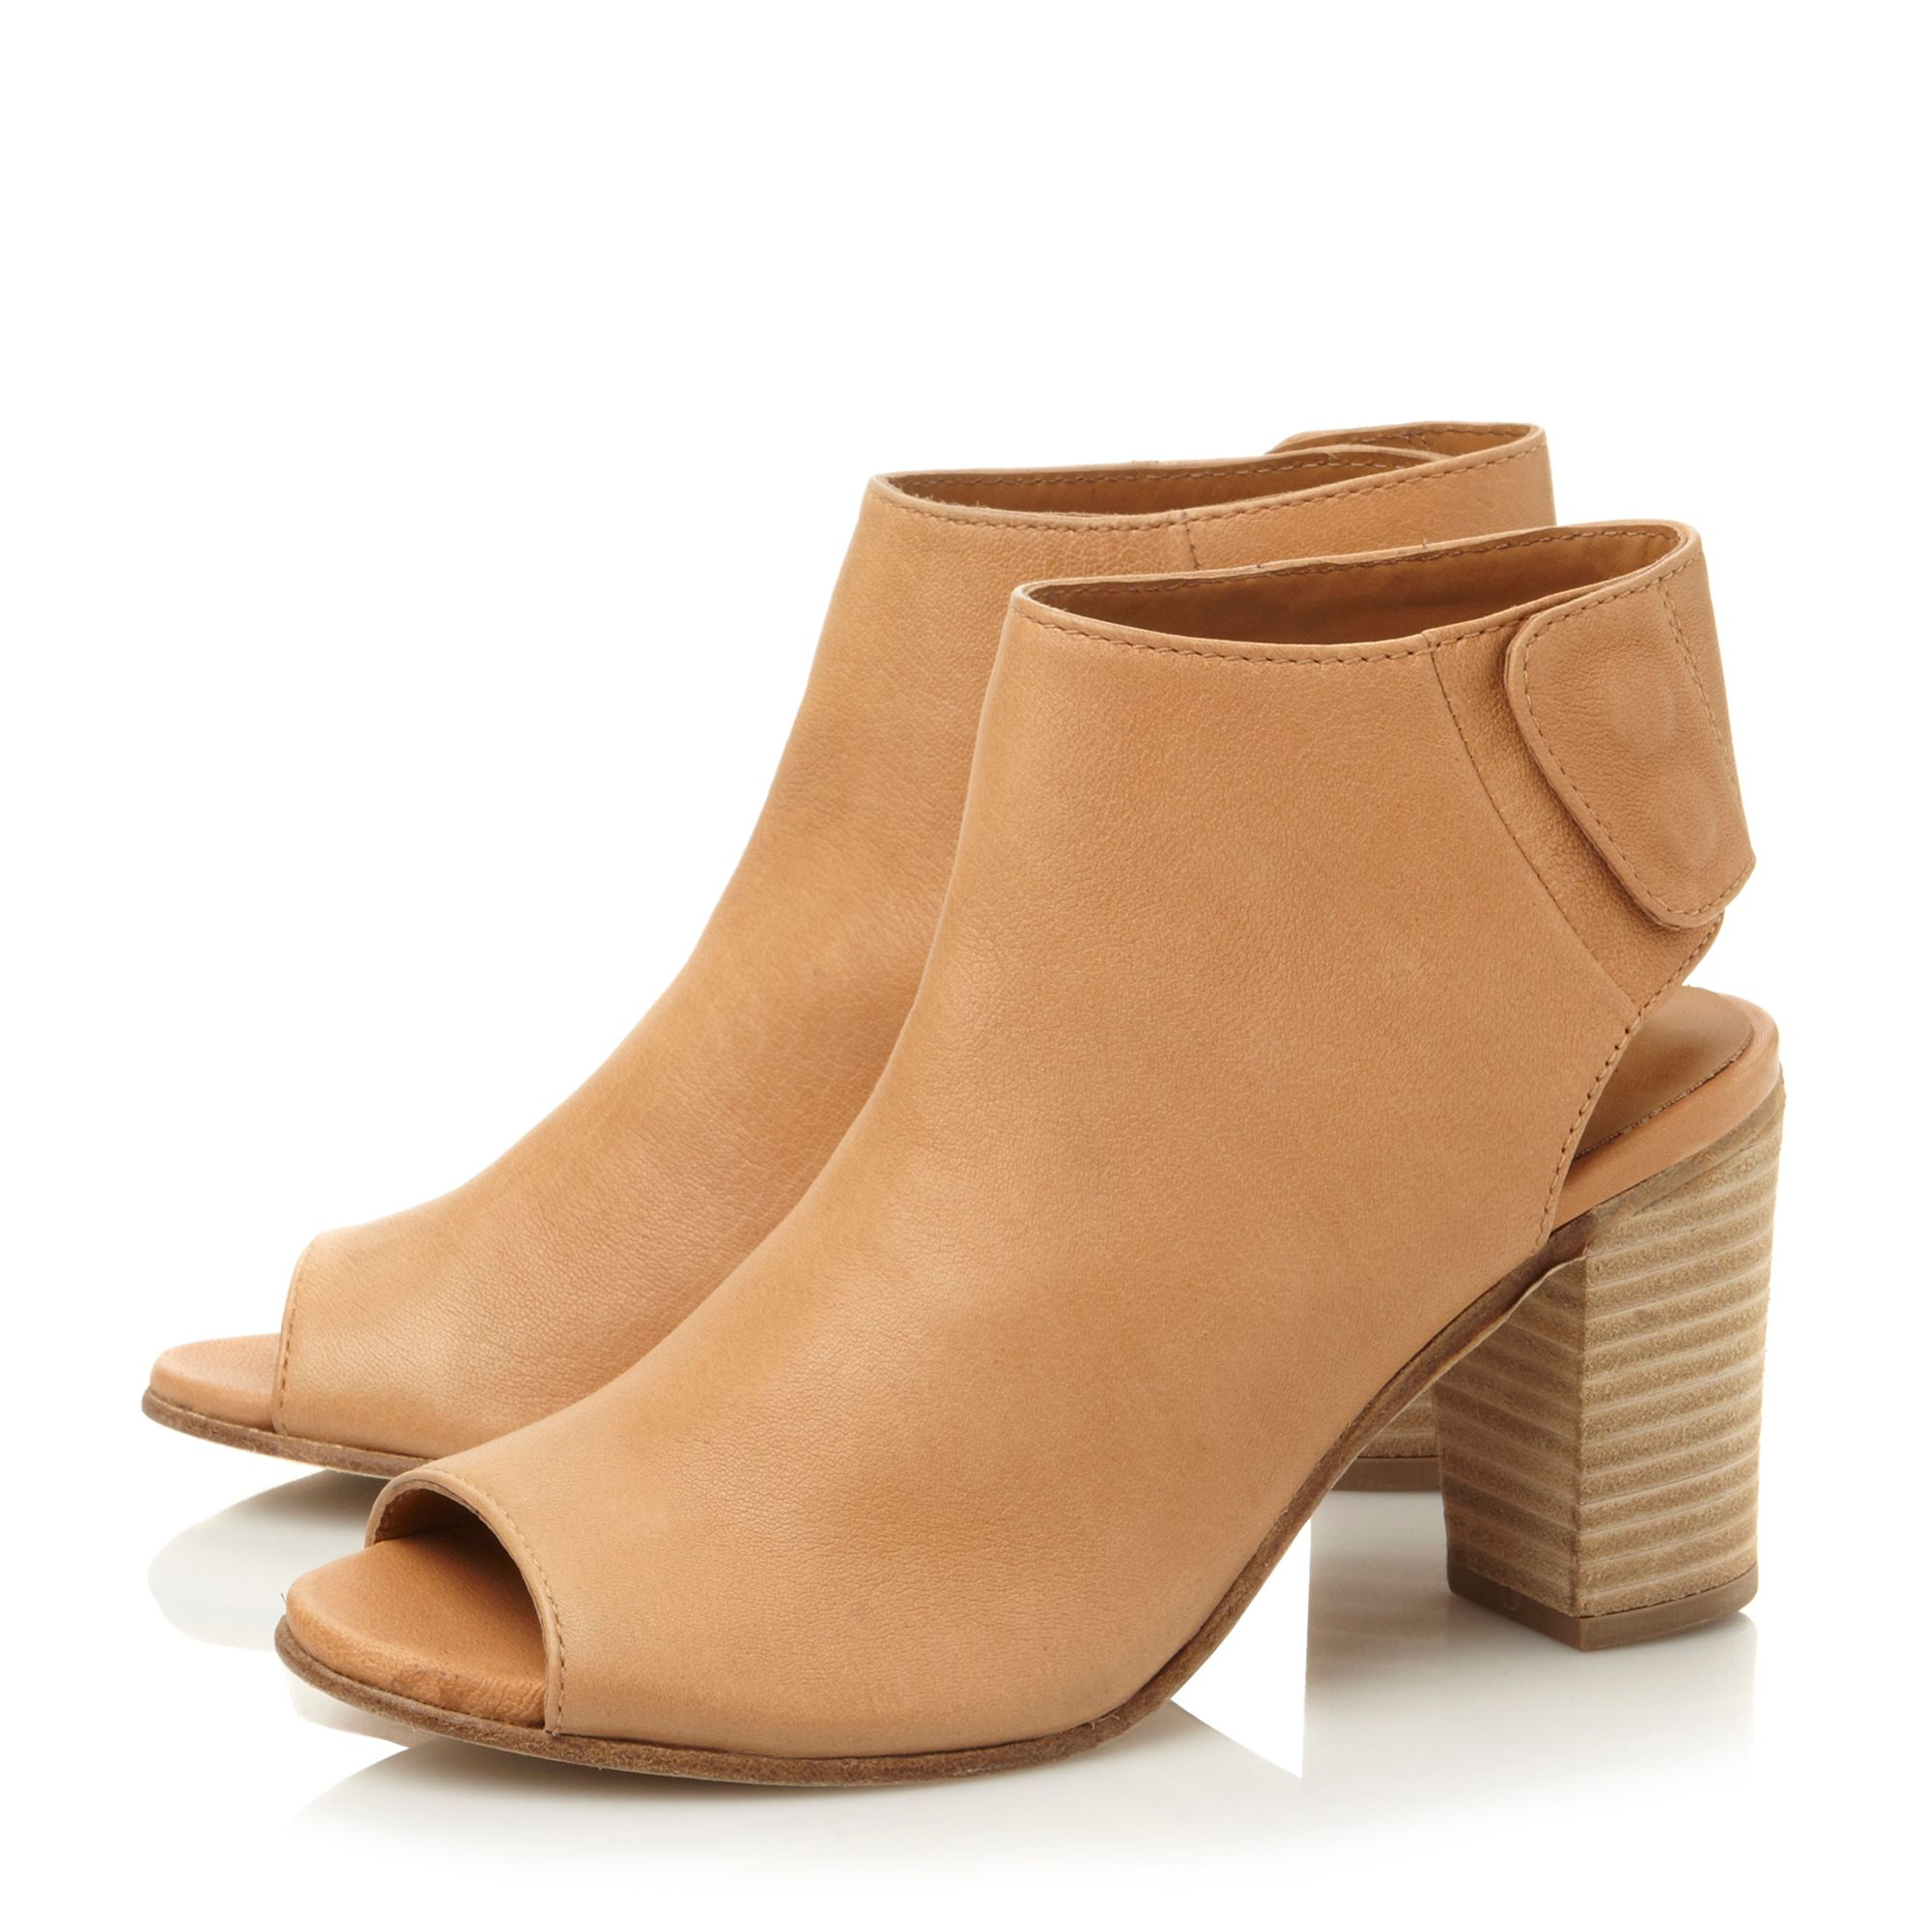 Felicity leather peeptoe block heel ankle boots